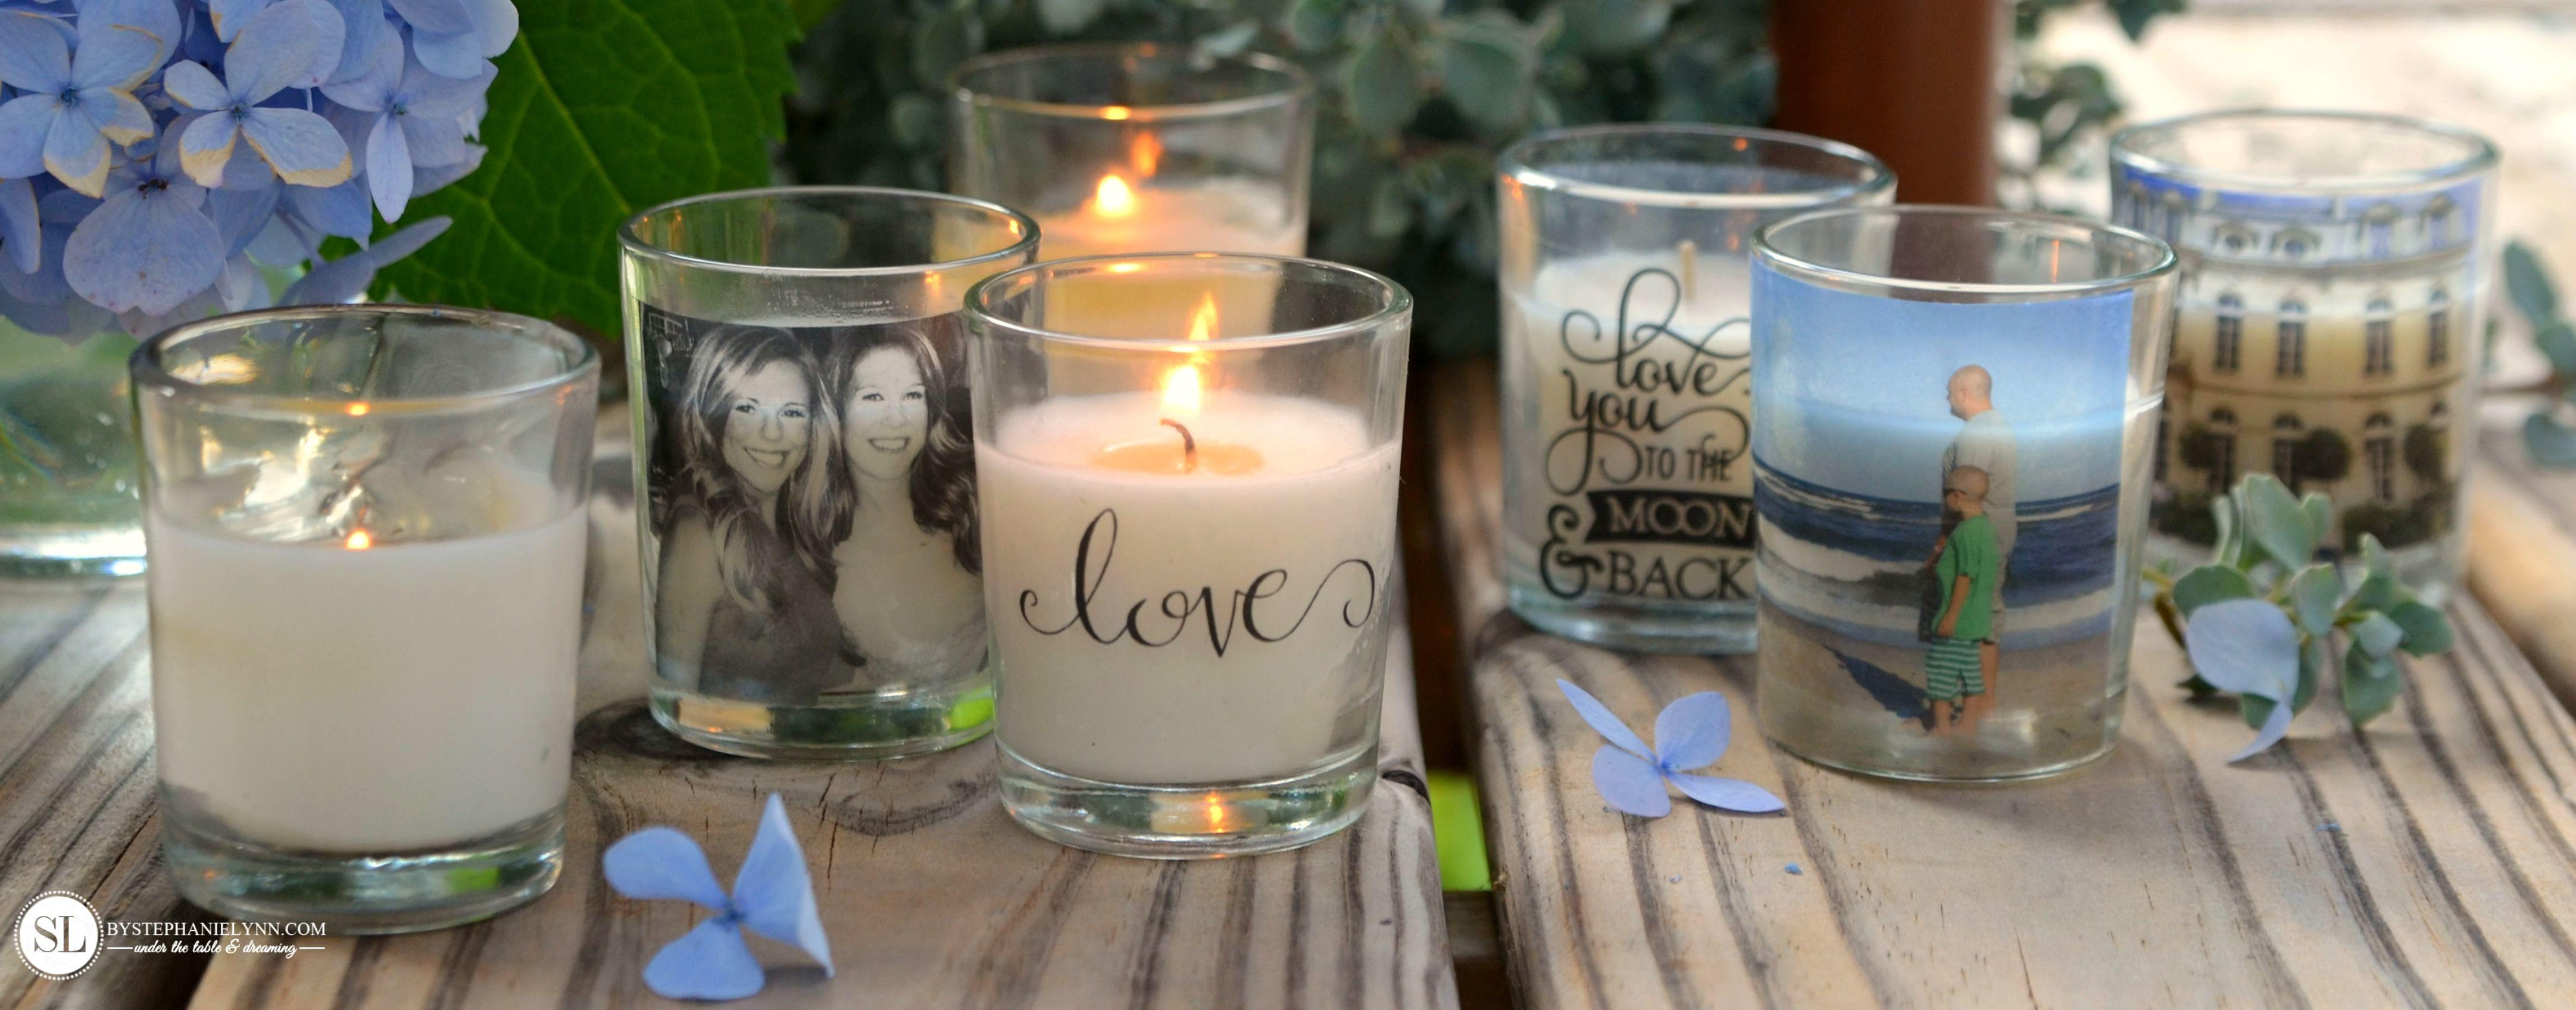 Custom Candle Holders Diy Packing Tape Transfers